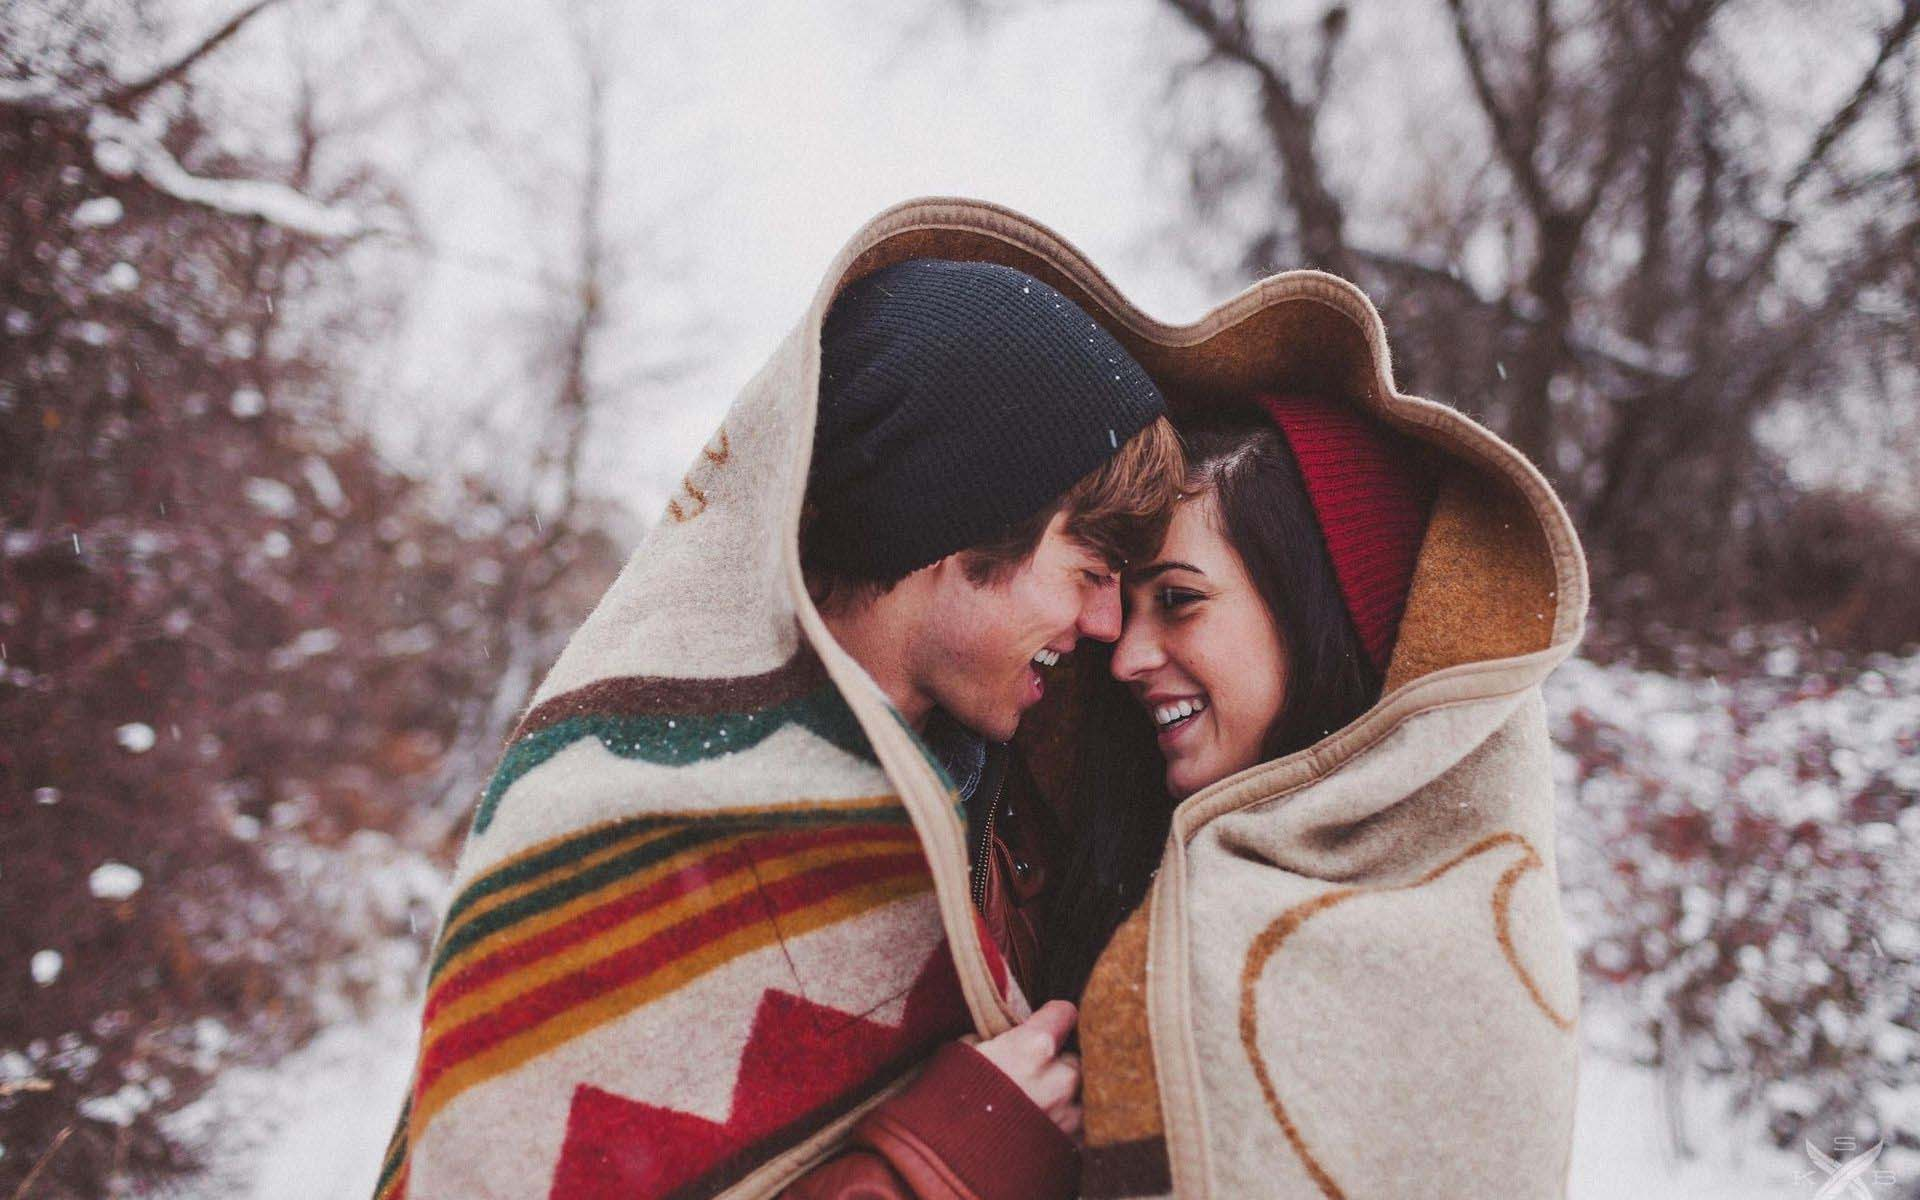 Romentic-Couple-Romance-In-Winter-Forest-Widescreen-HD-Wallpapers